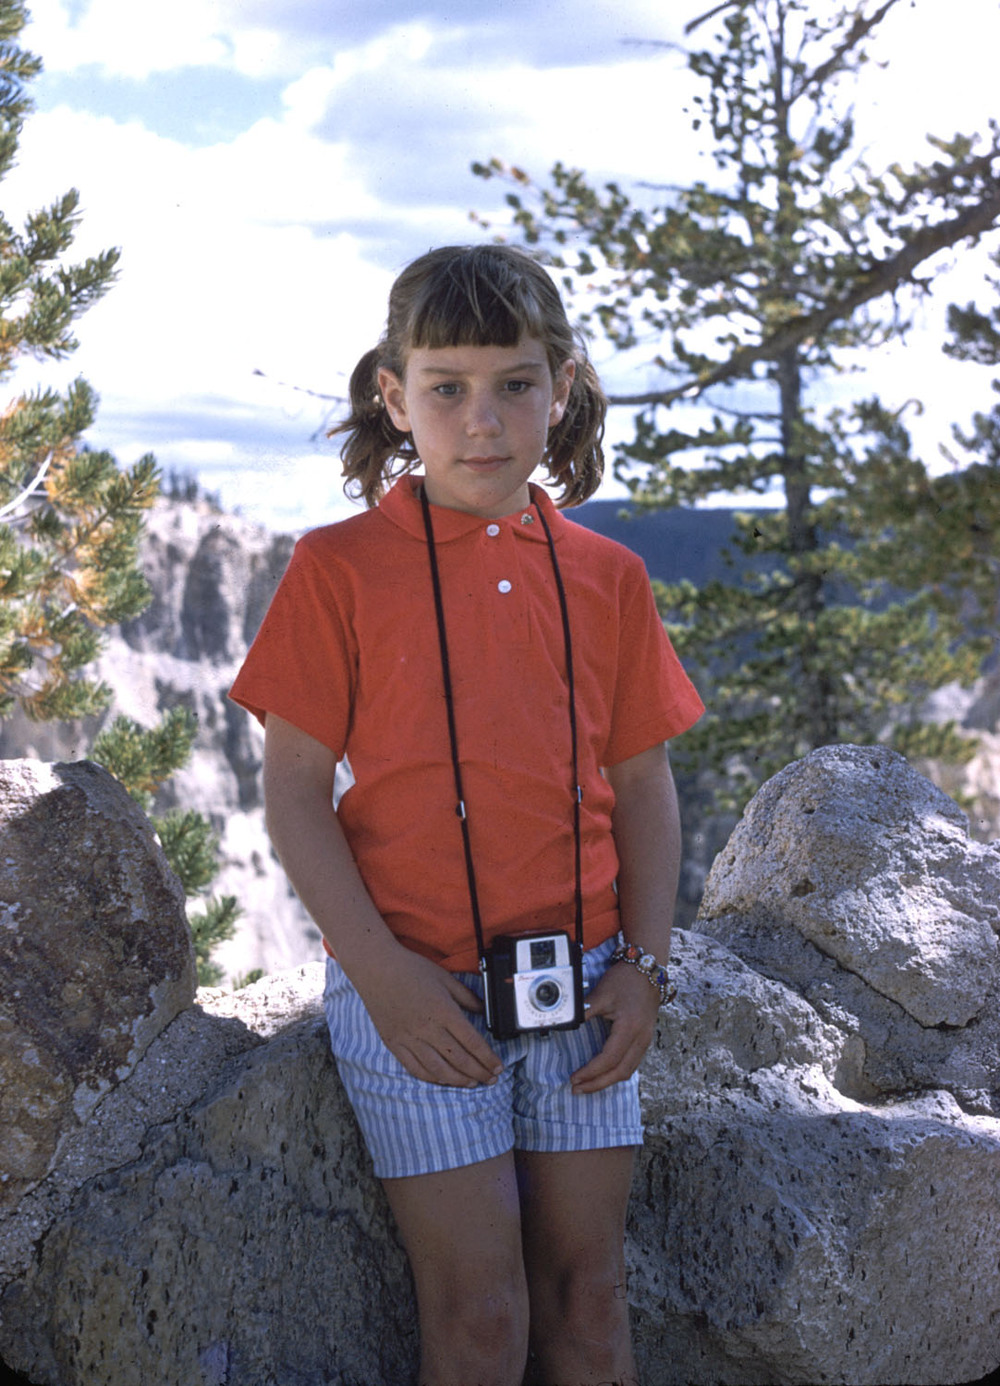 Me with my Brownie camera in Yellowstone National Park